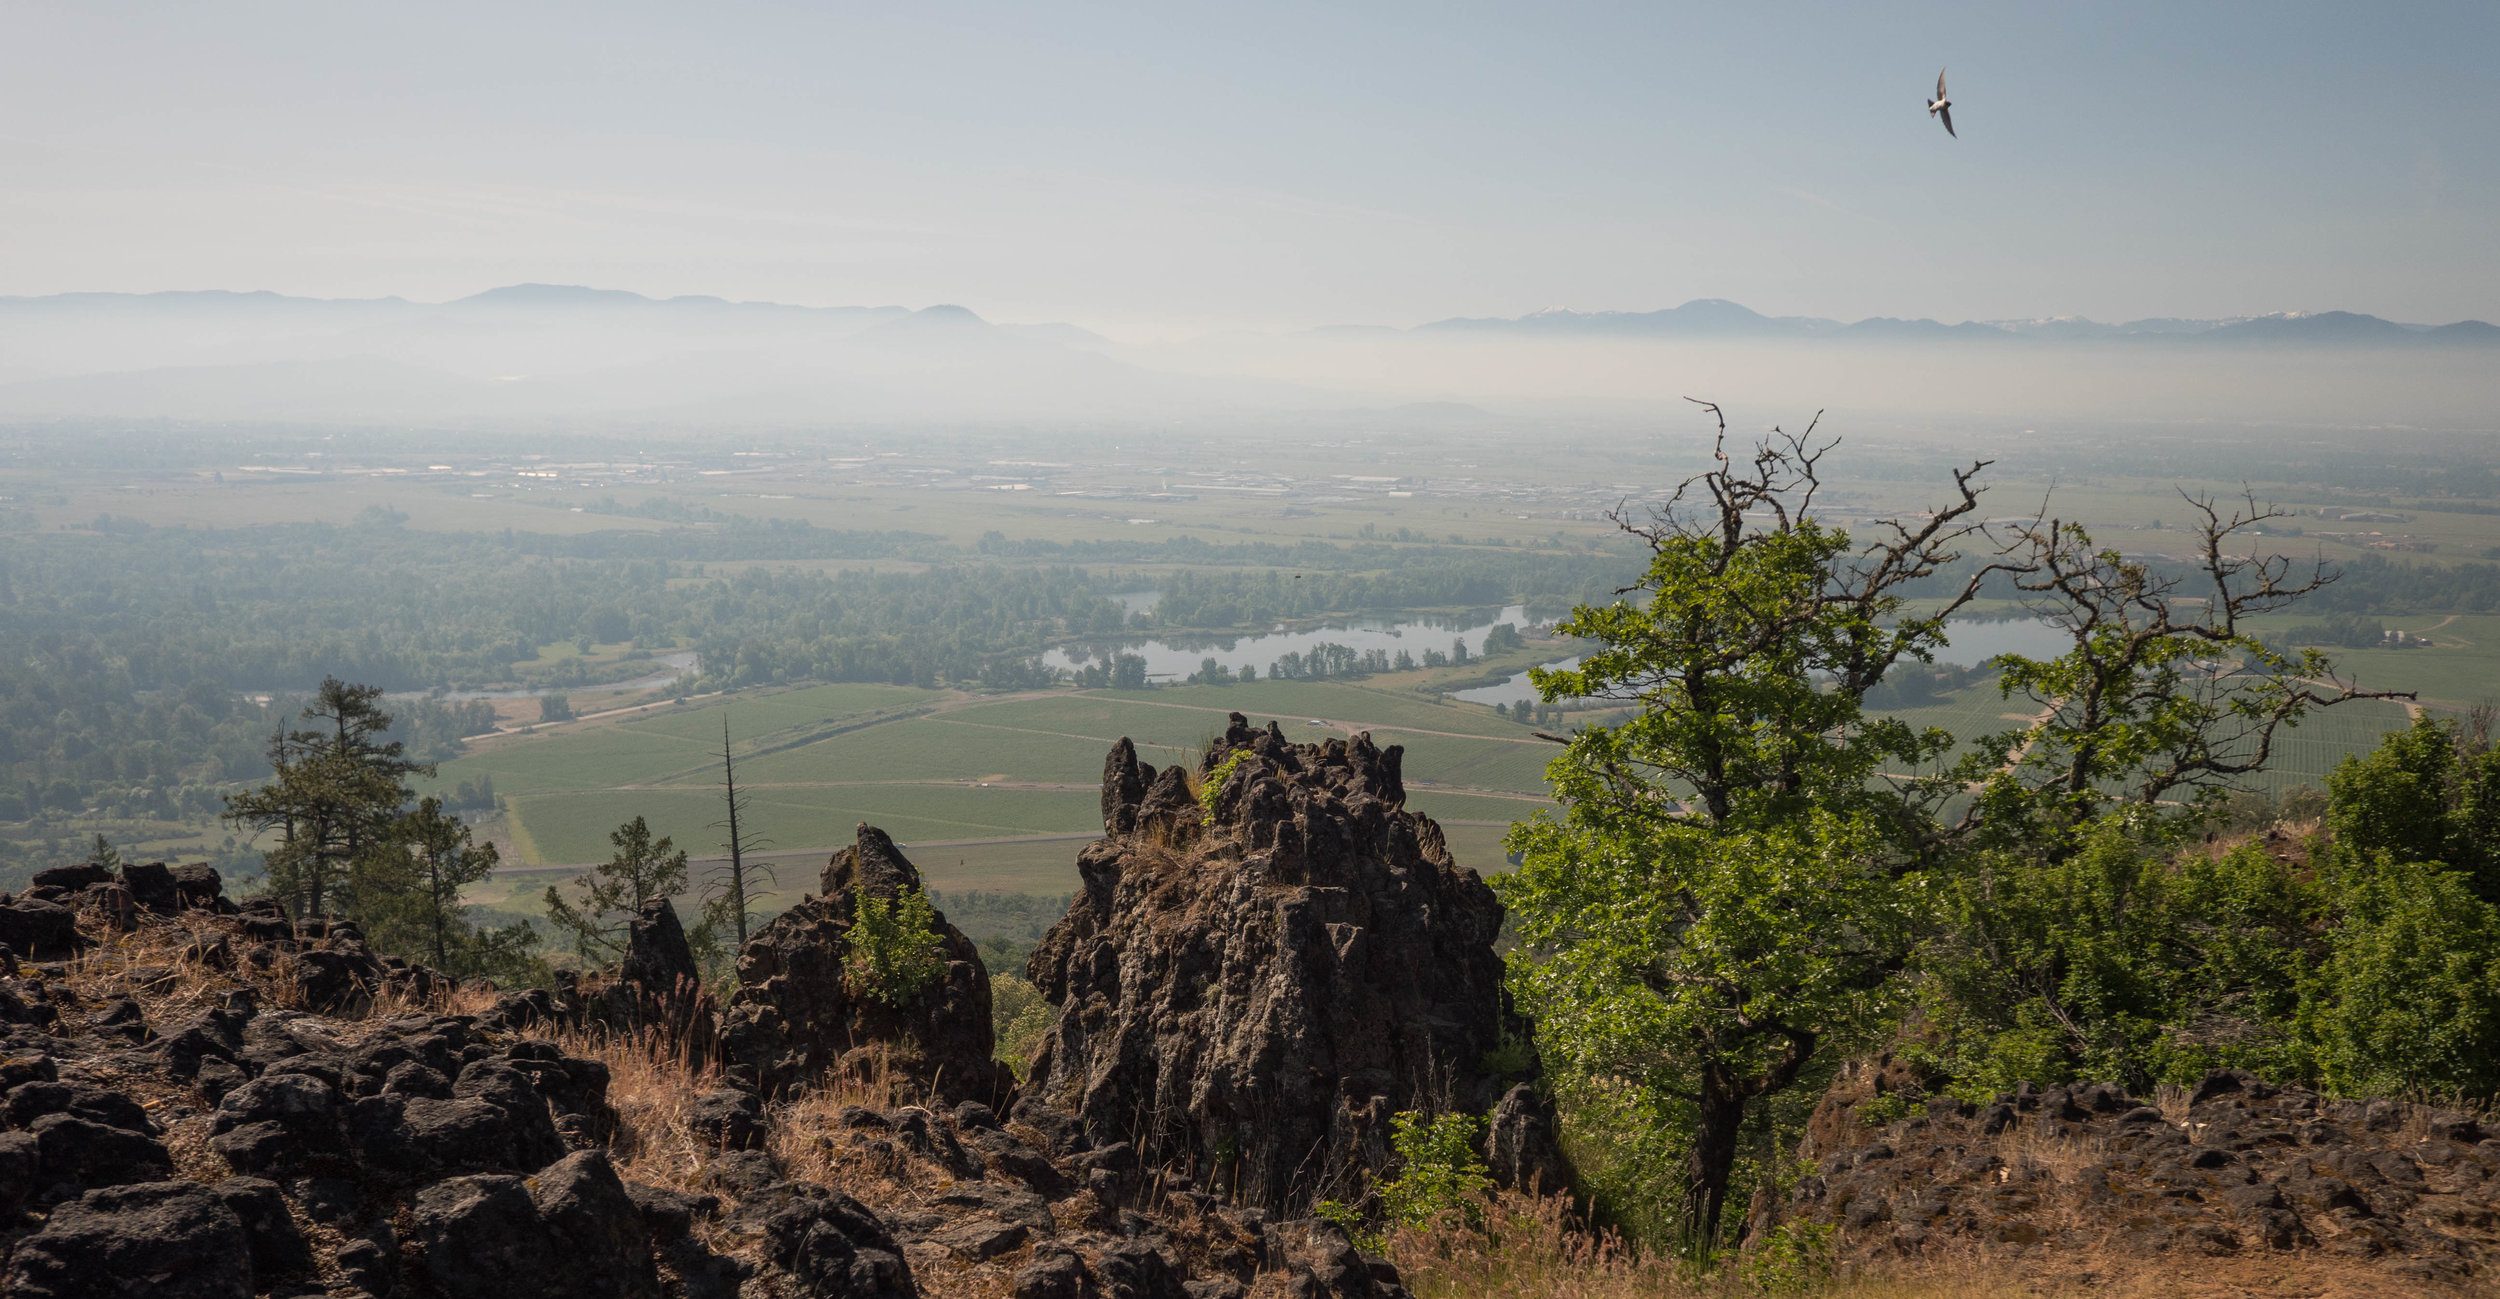 The view to the south. The Siskiyou range and more of the Rogue Valley.